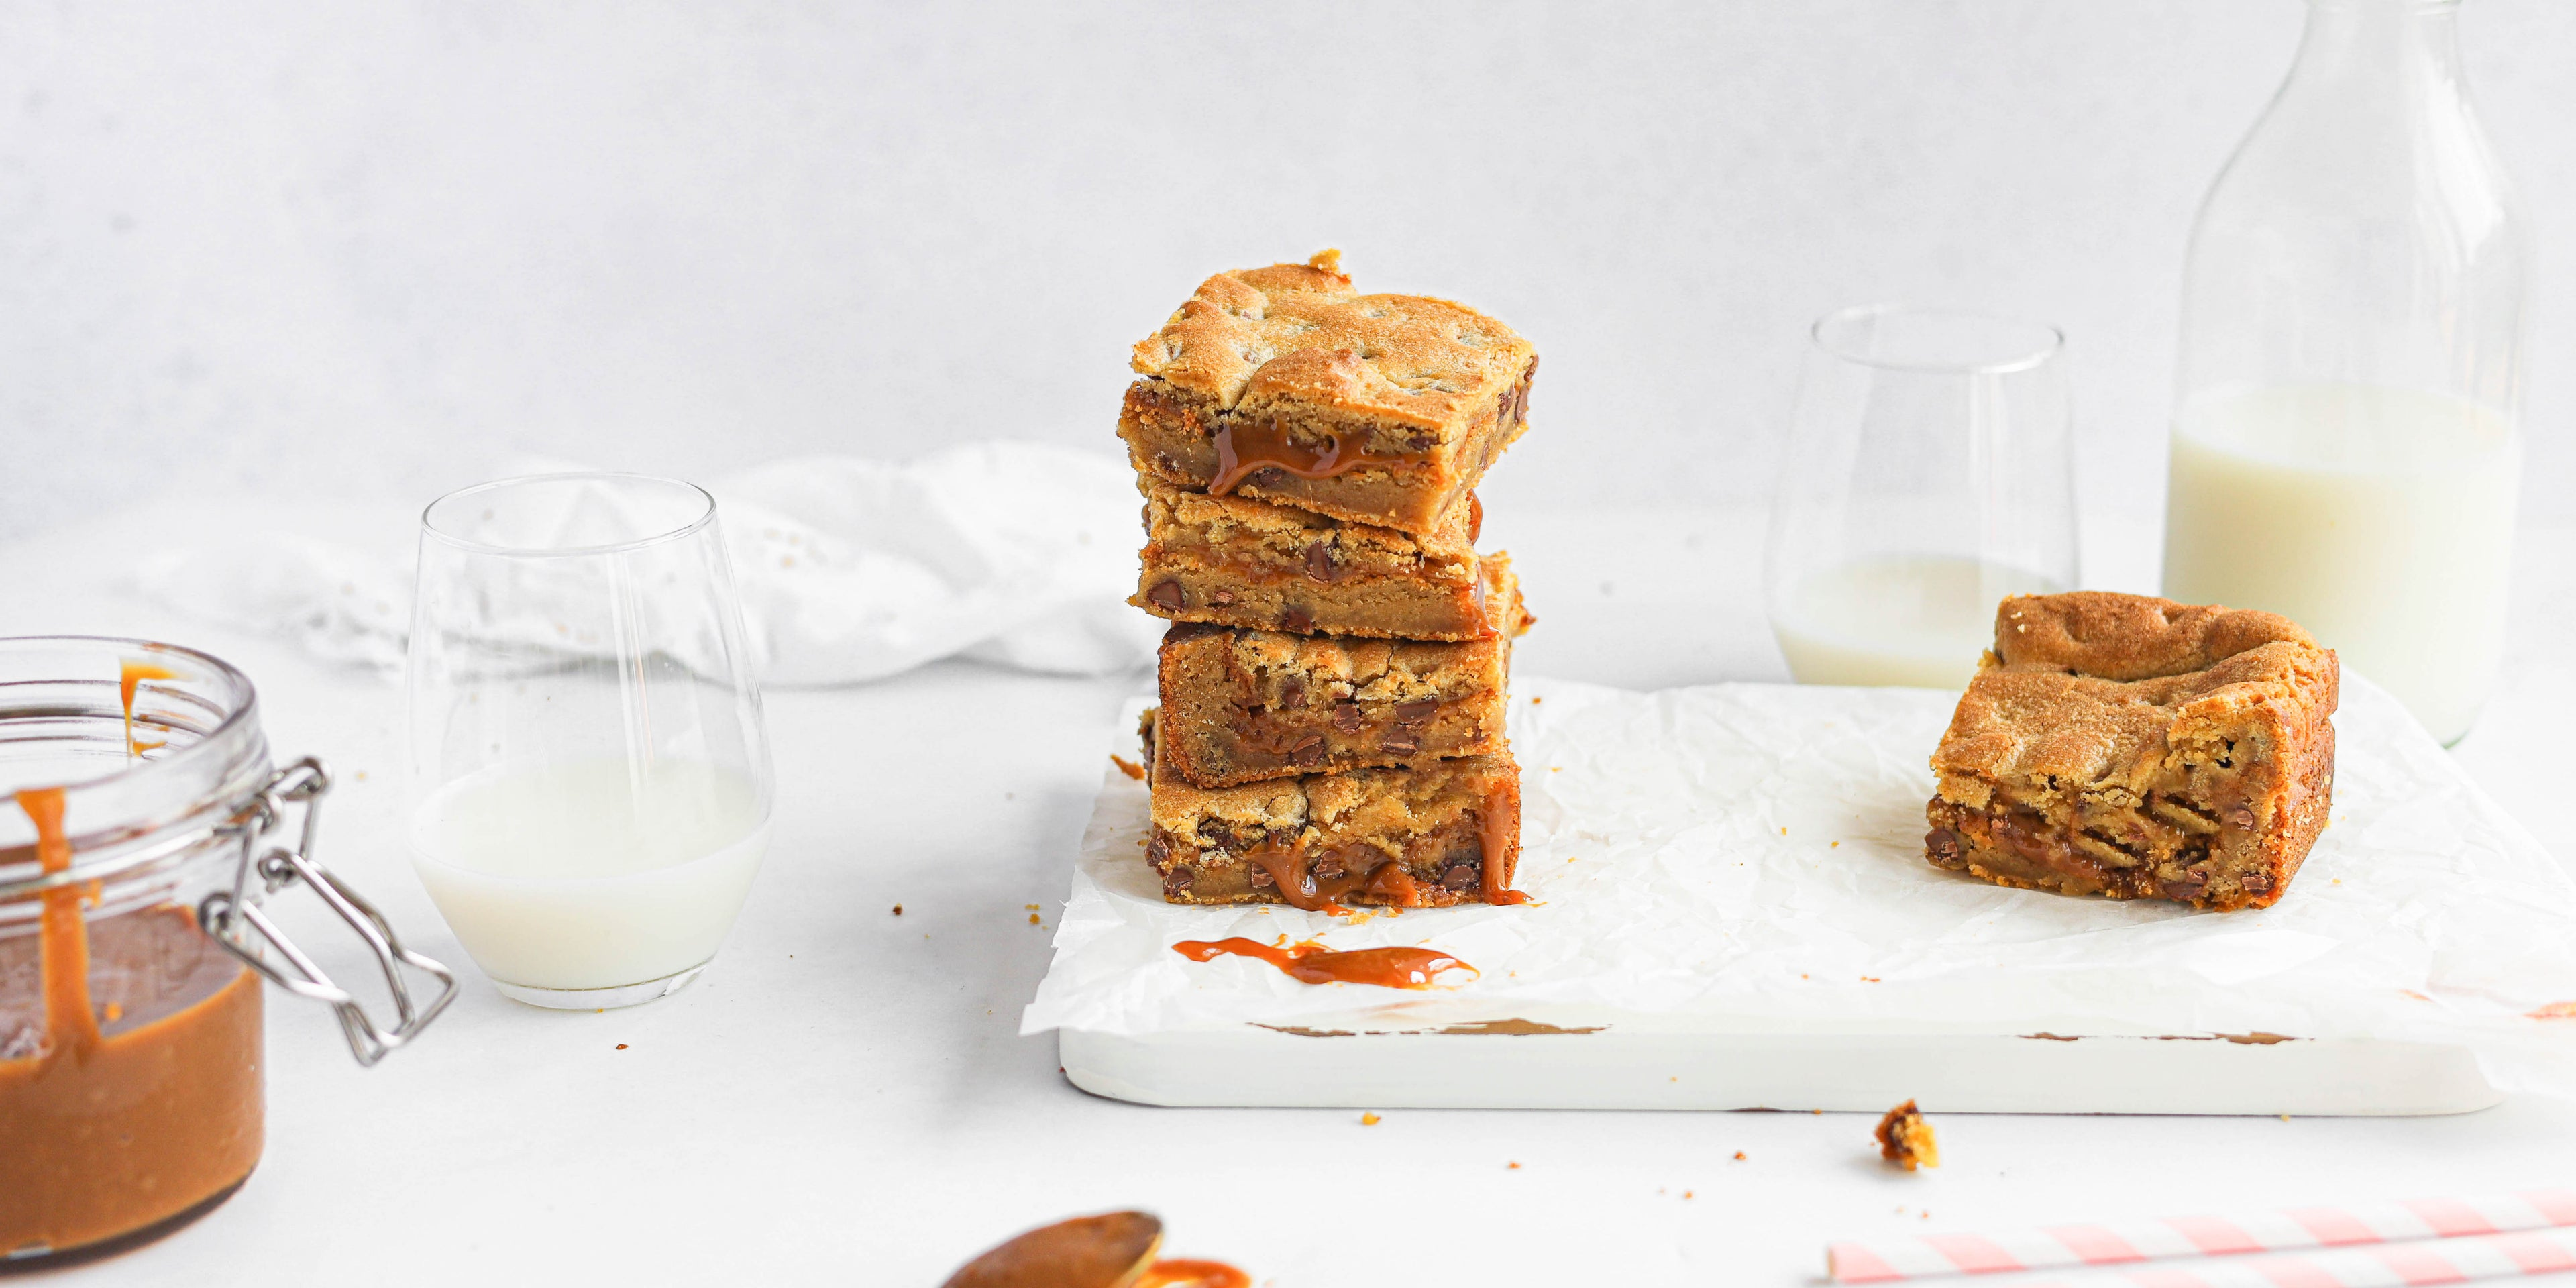 Stack of Salted Caramel Cookie Traybake on baking paper on a marble serving board, next to a jar of caramel and a half full glass of milk